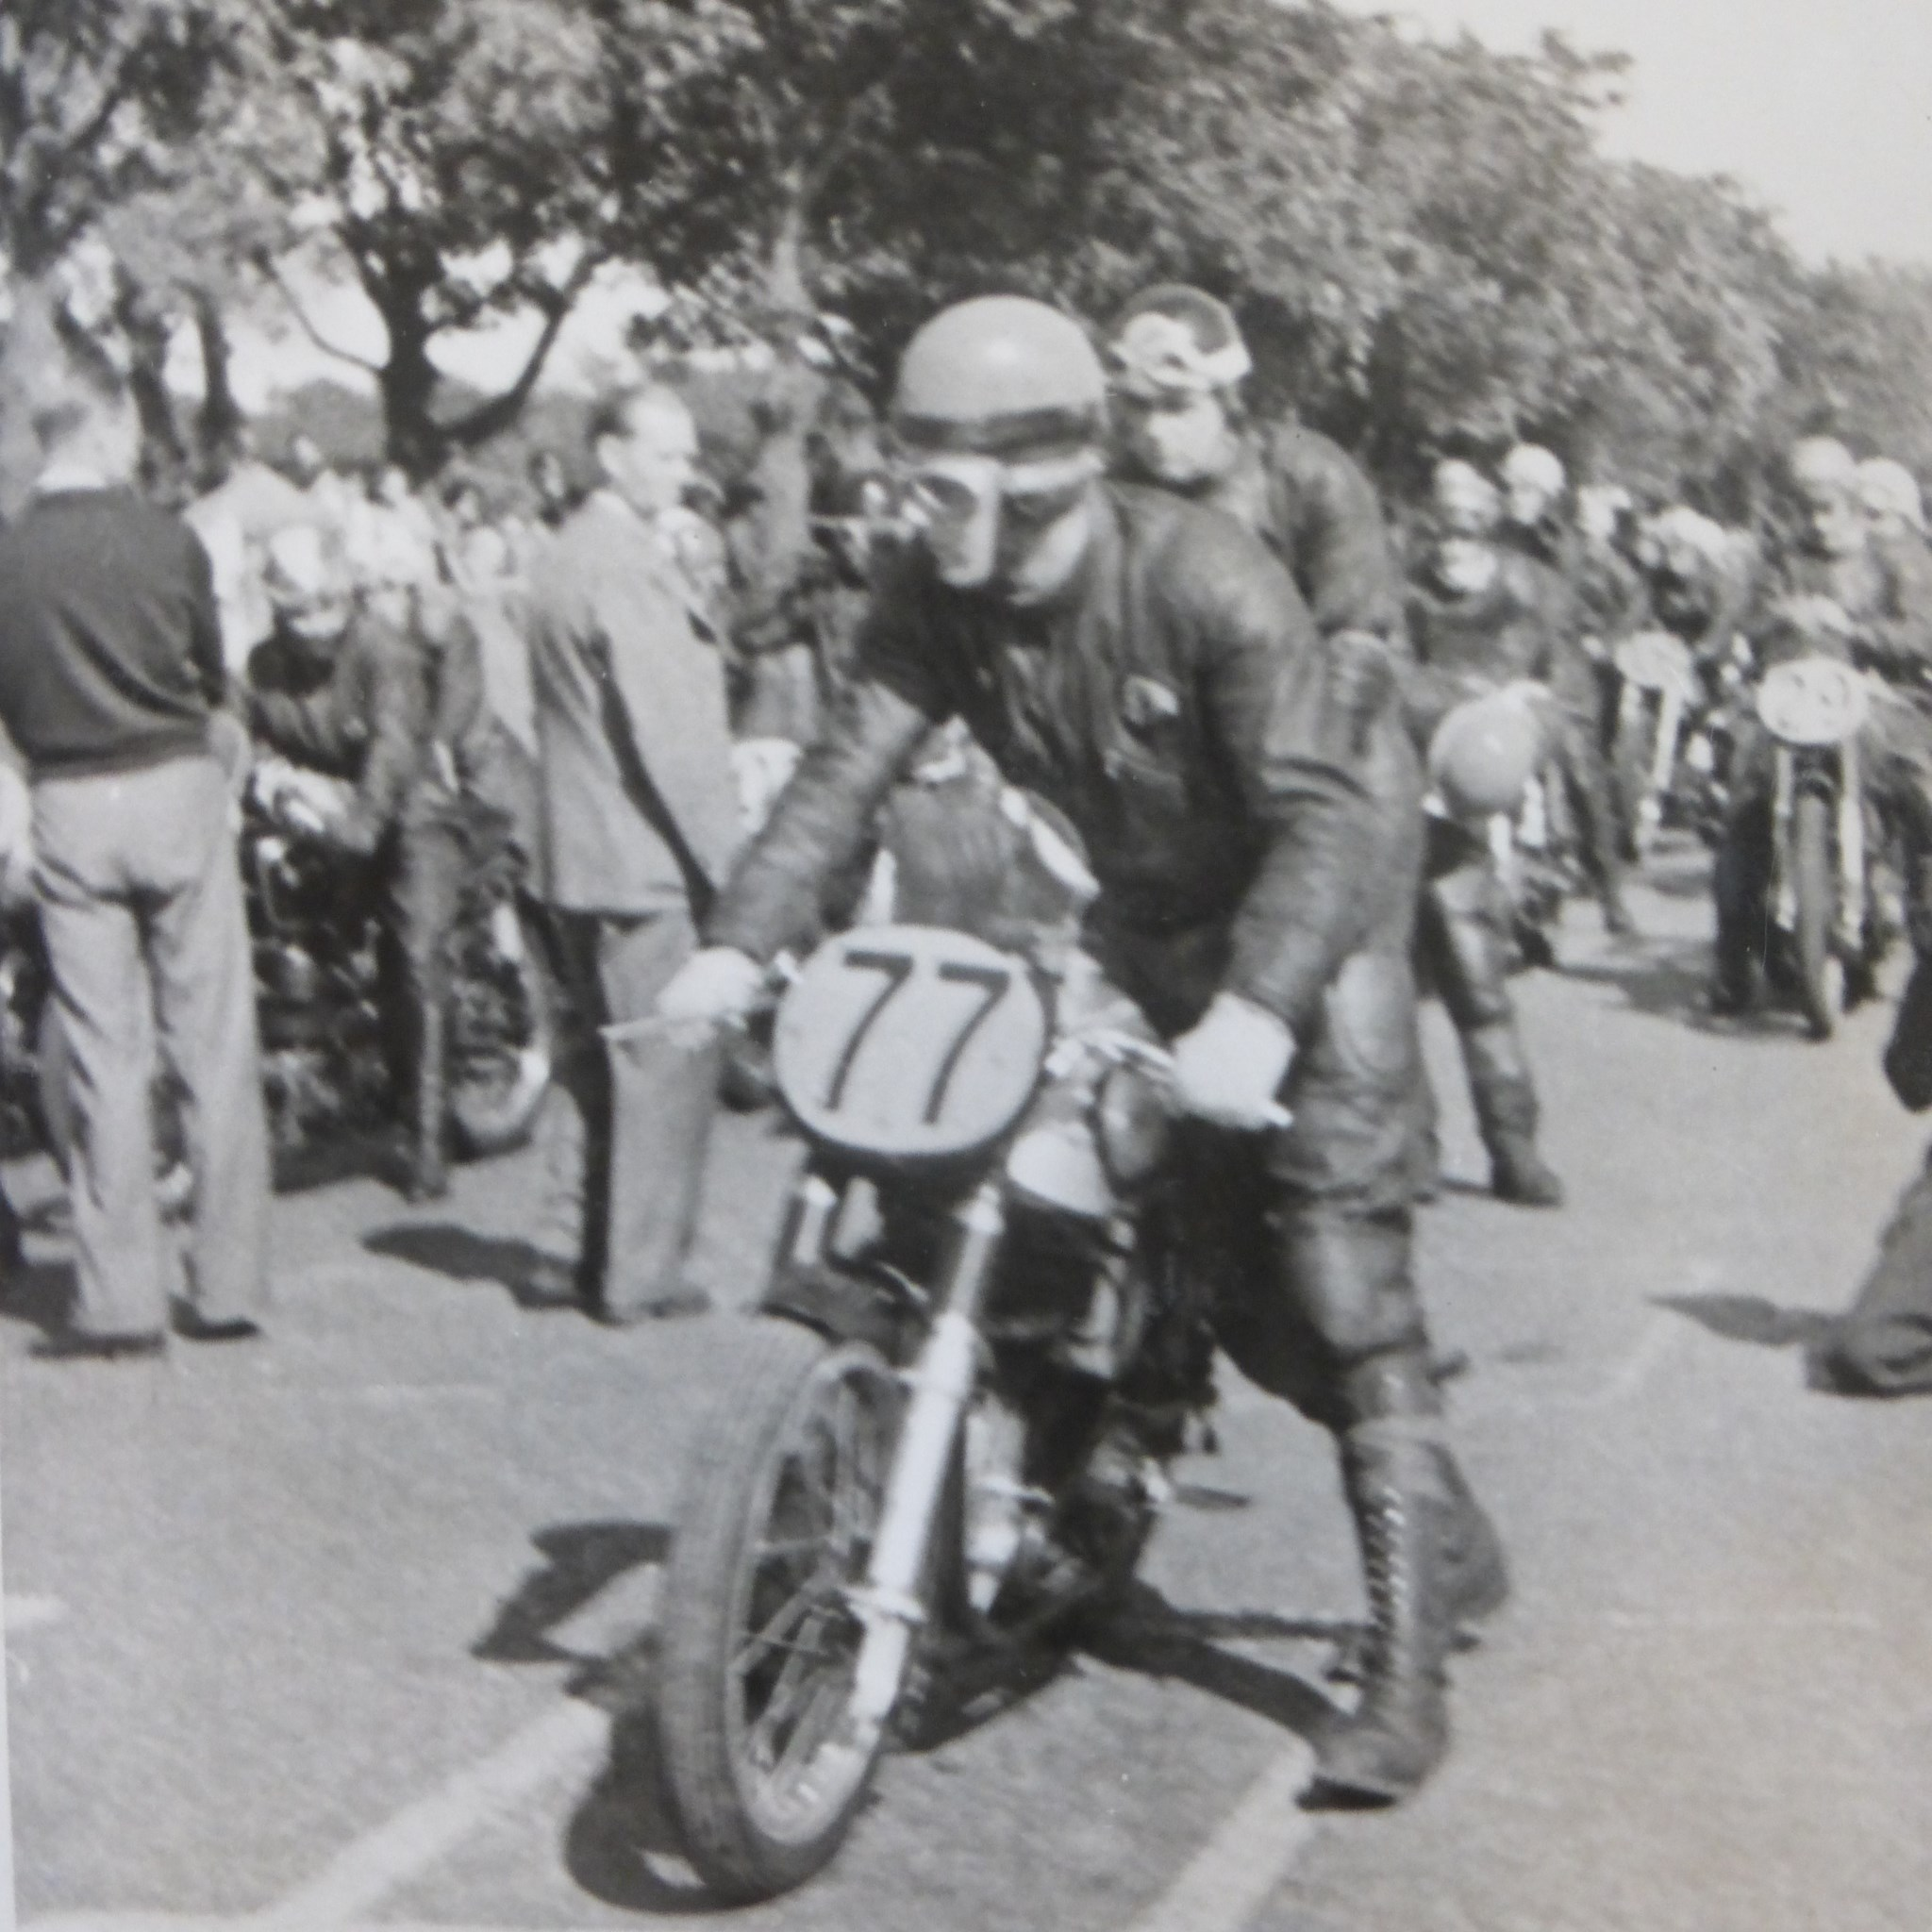 On the start line, probably not at the TT though.